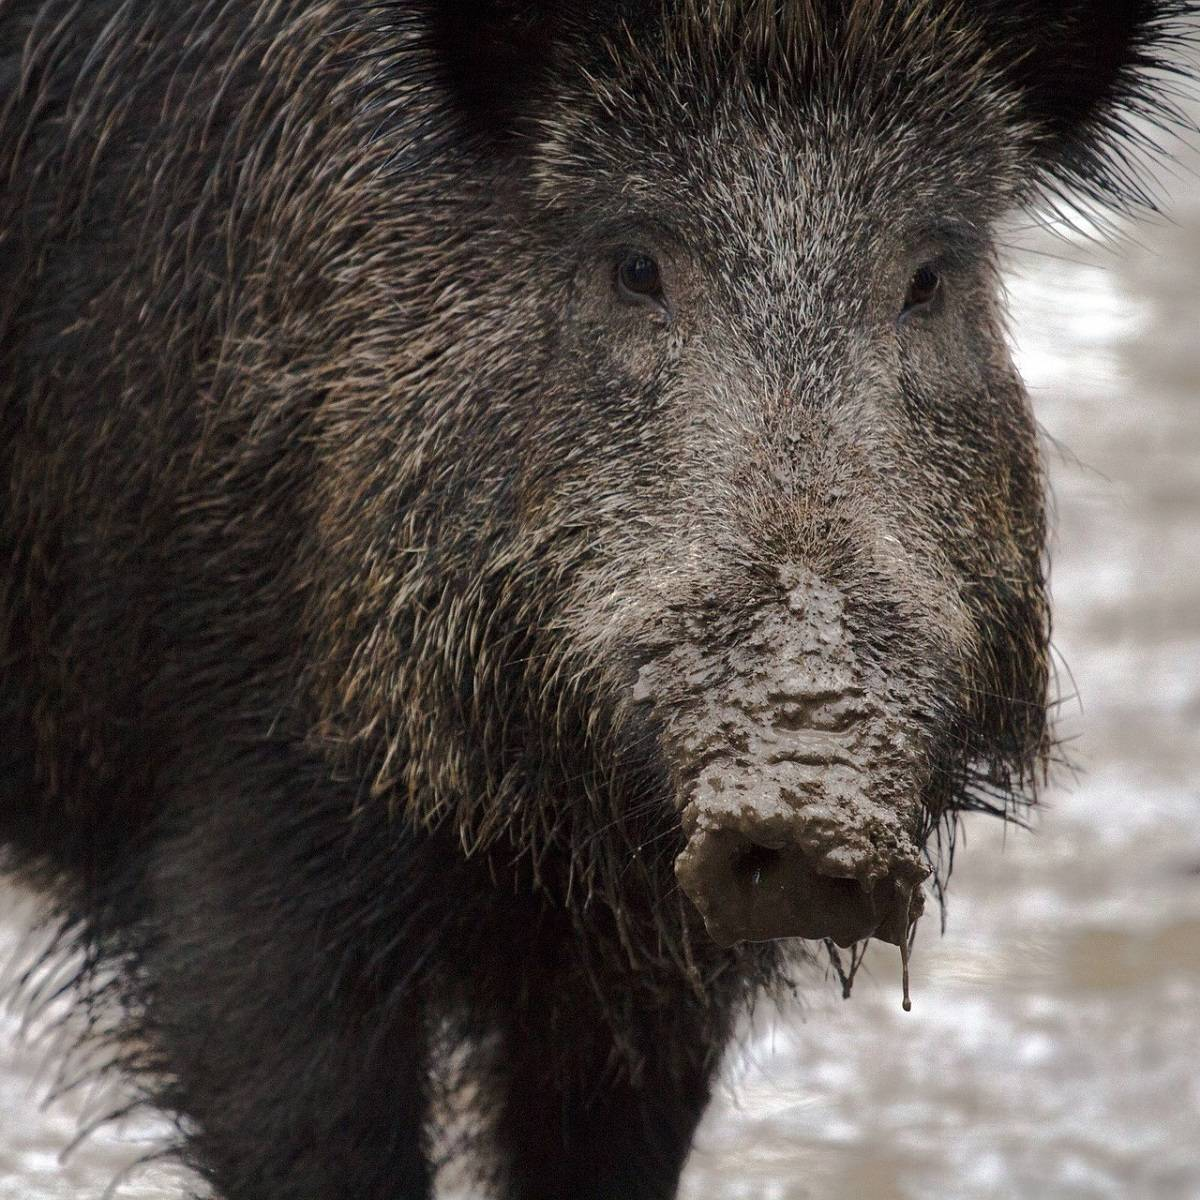 A wild boar with mud all over his snout